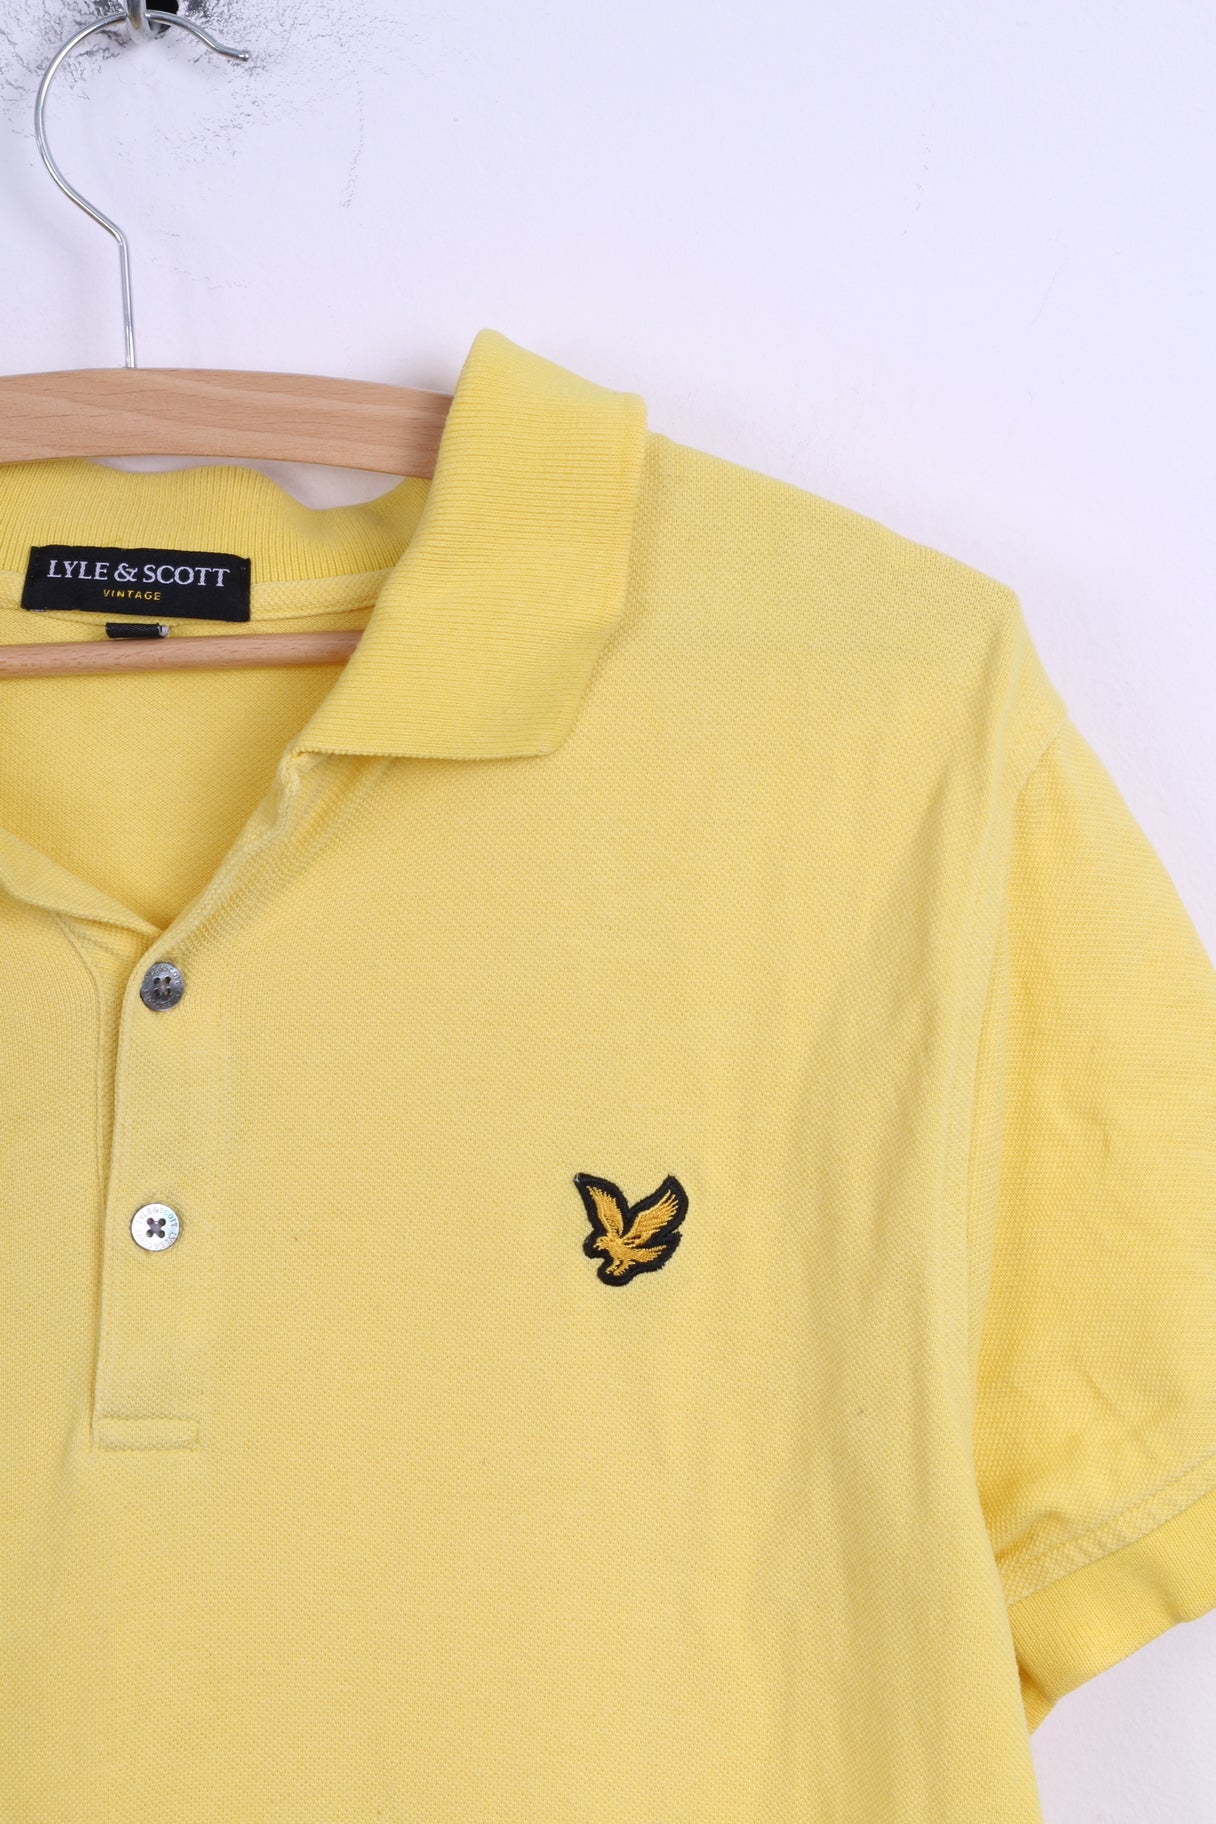 Lyle Scott Vintage Mens L S Polo Shirt Yellow Cotton Slim Fit Ampamp Red Detailed